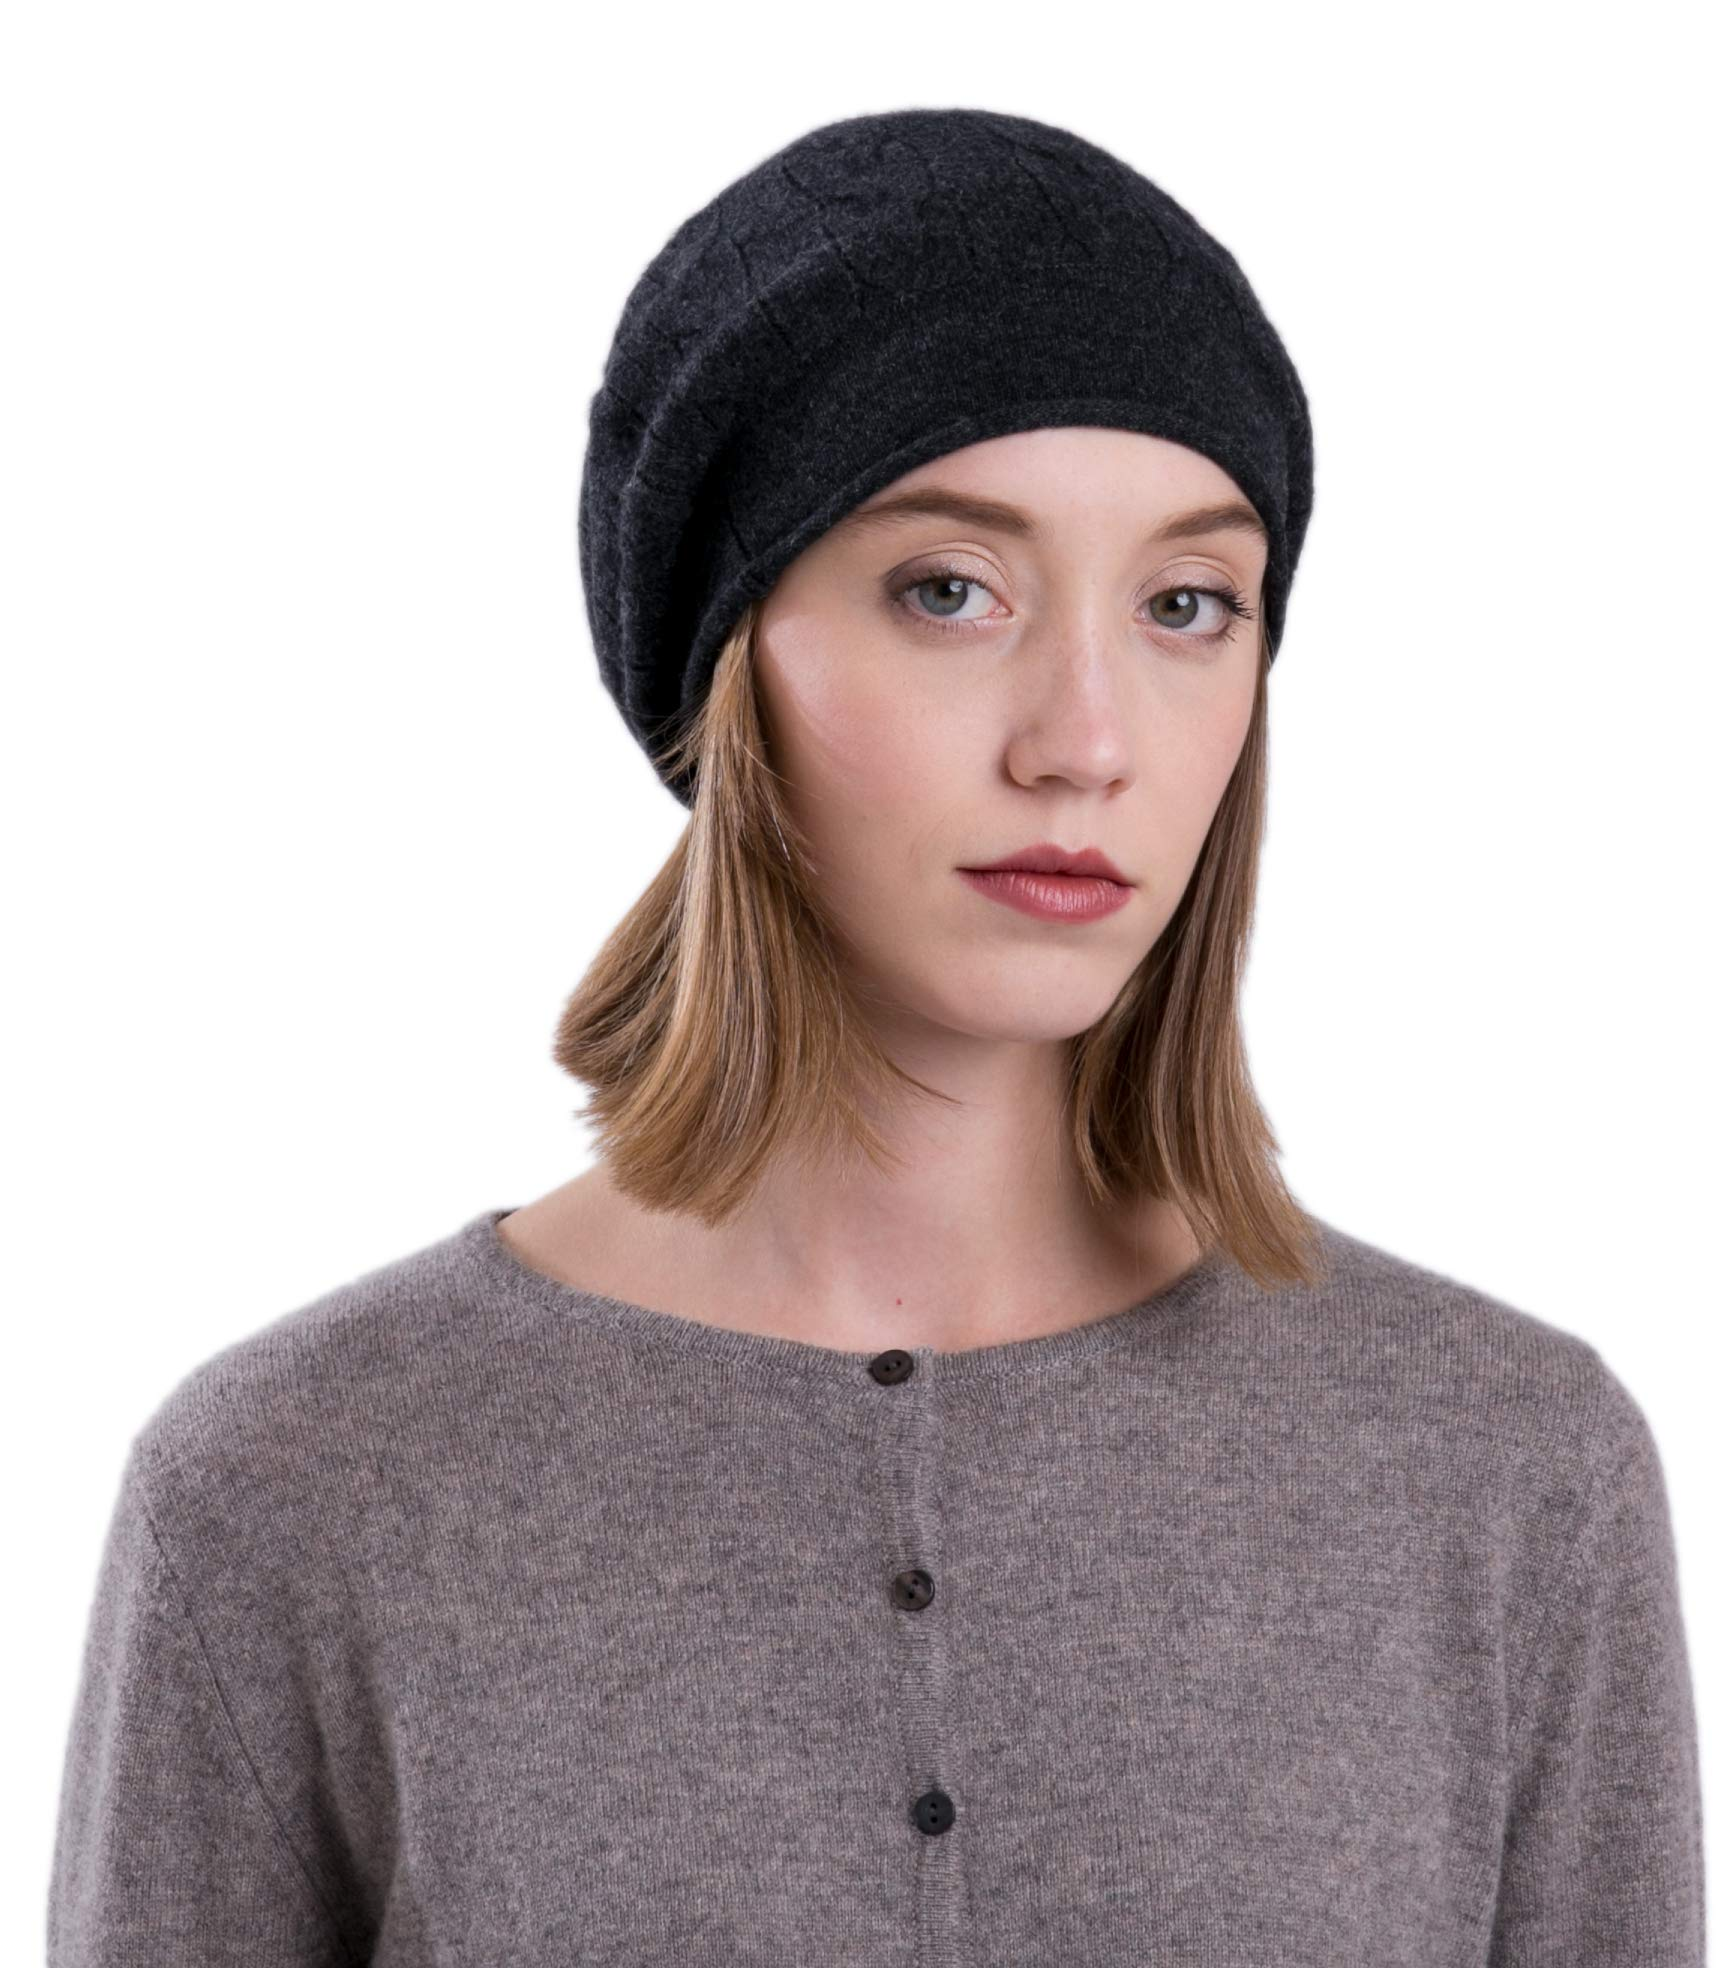 LEBAC 100% Cashmere Cable Knit Beanie Hat Charcoal